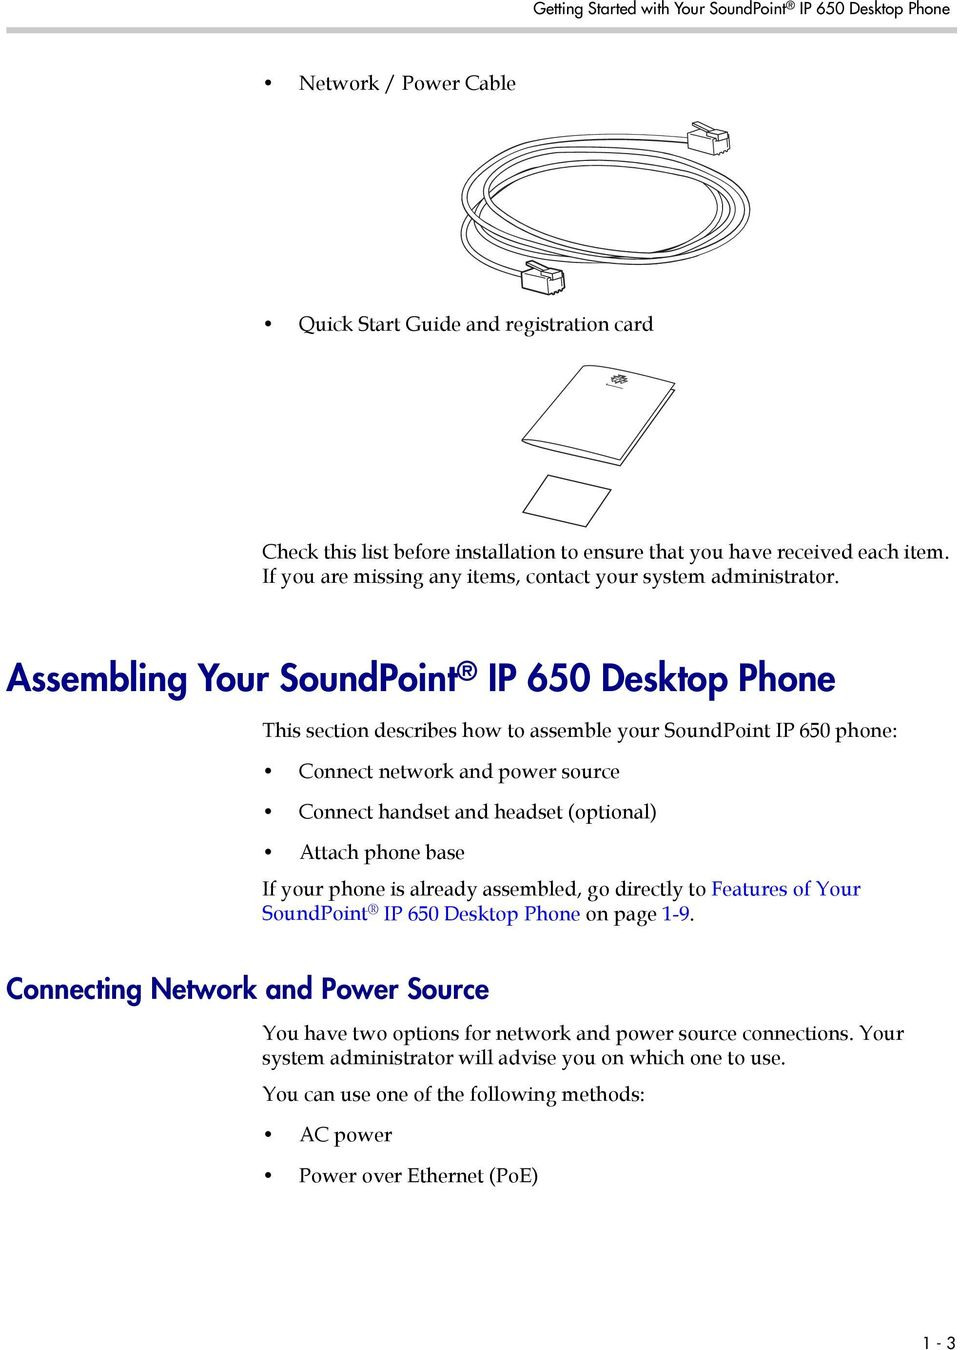 Assembling Your SoundPoint IP 650 Desktop Phone This section describes how to assemble your SoundPoint IP 650 phone: Connect network and power source Connect handset and headset (optional) Attach